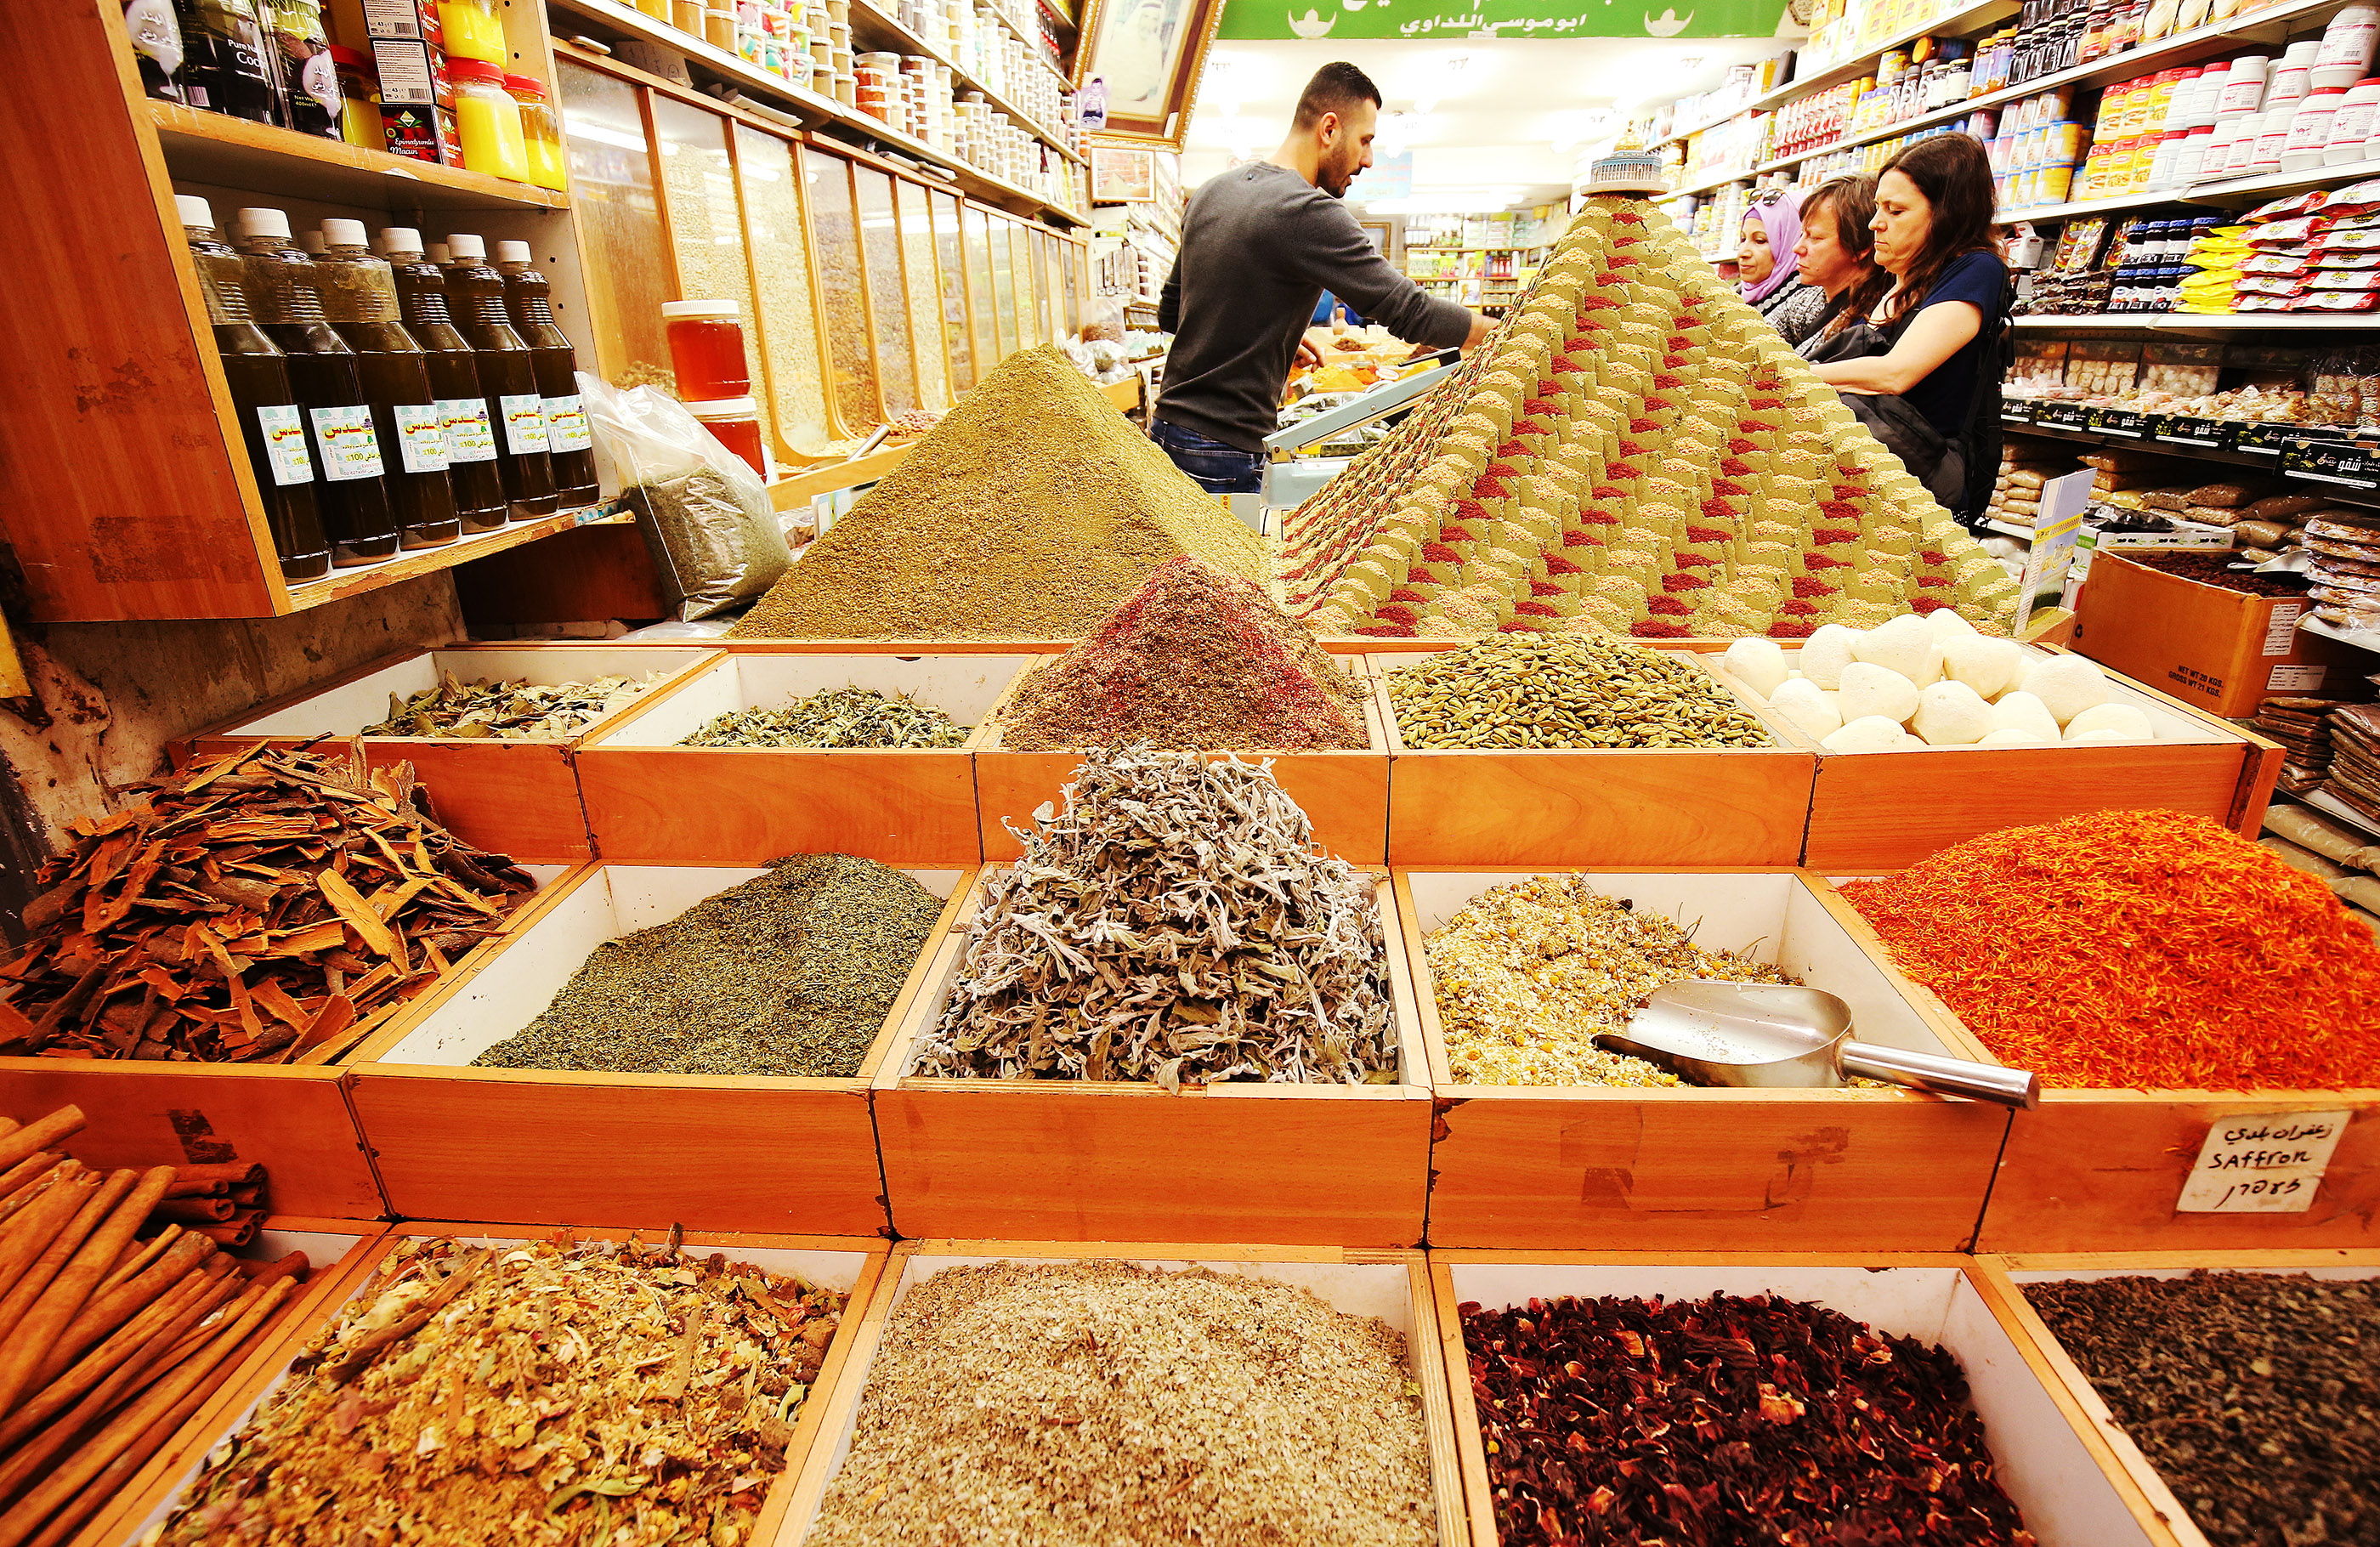 Spices are sold the Old City market in Jerusalem on Friday, April 13, 2018.